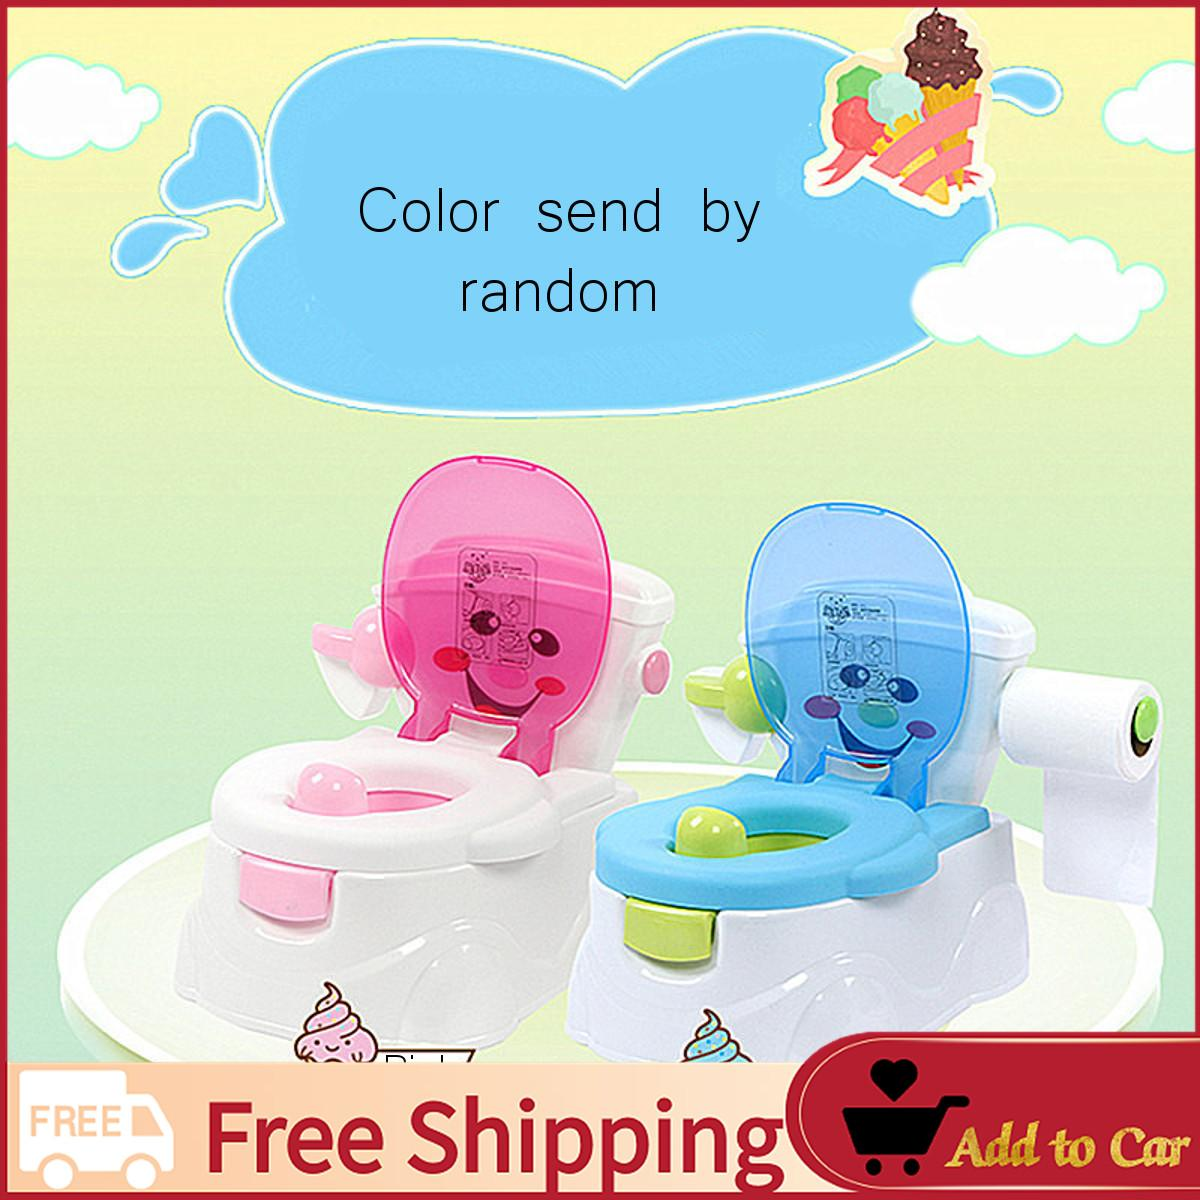 【free Shipping】fisher Price My Talking Potty Friend - Musical Learning Sounds Toilet Training - Intl By Freebang.